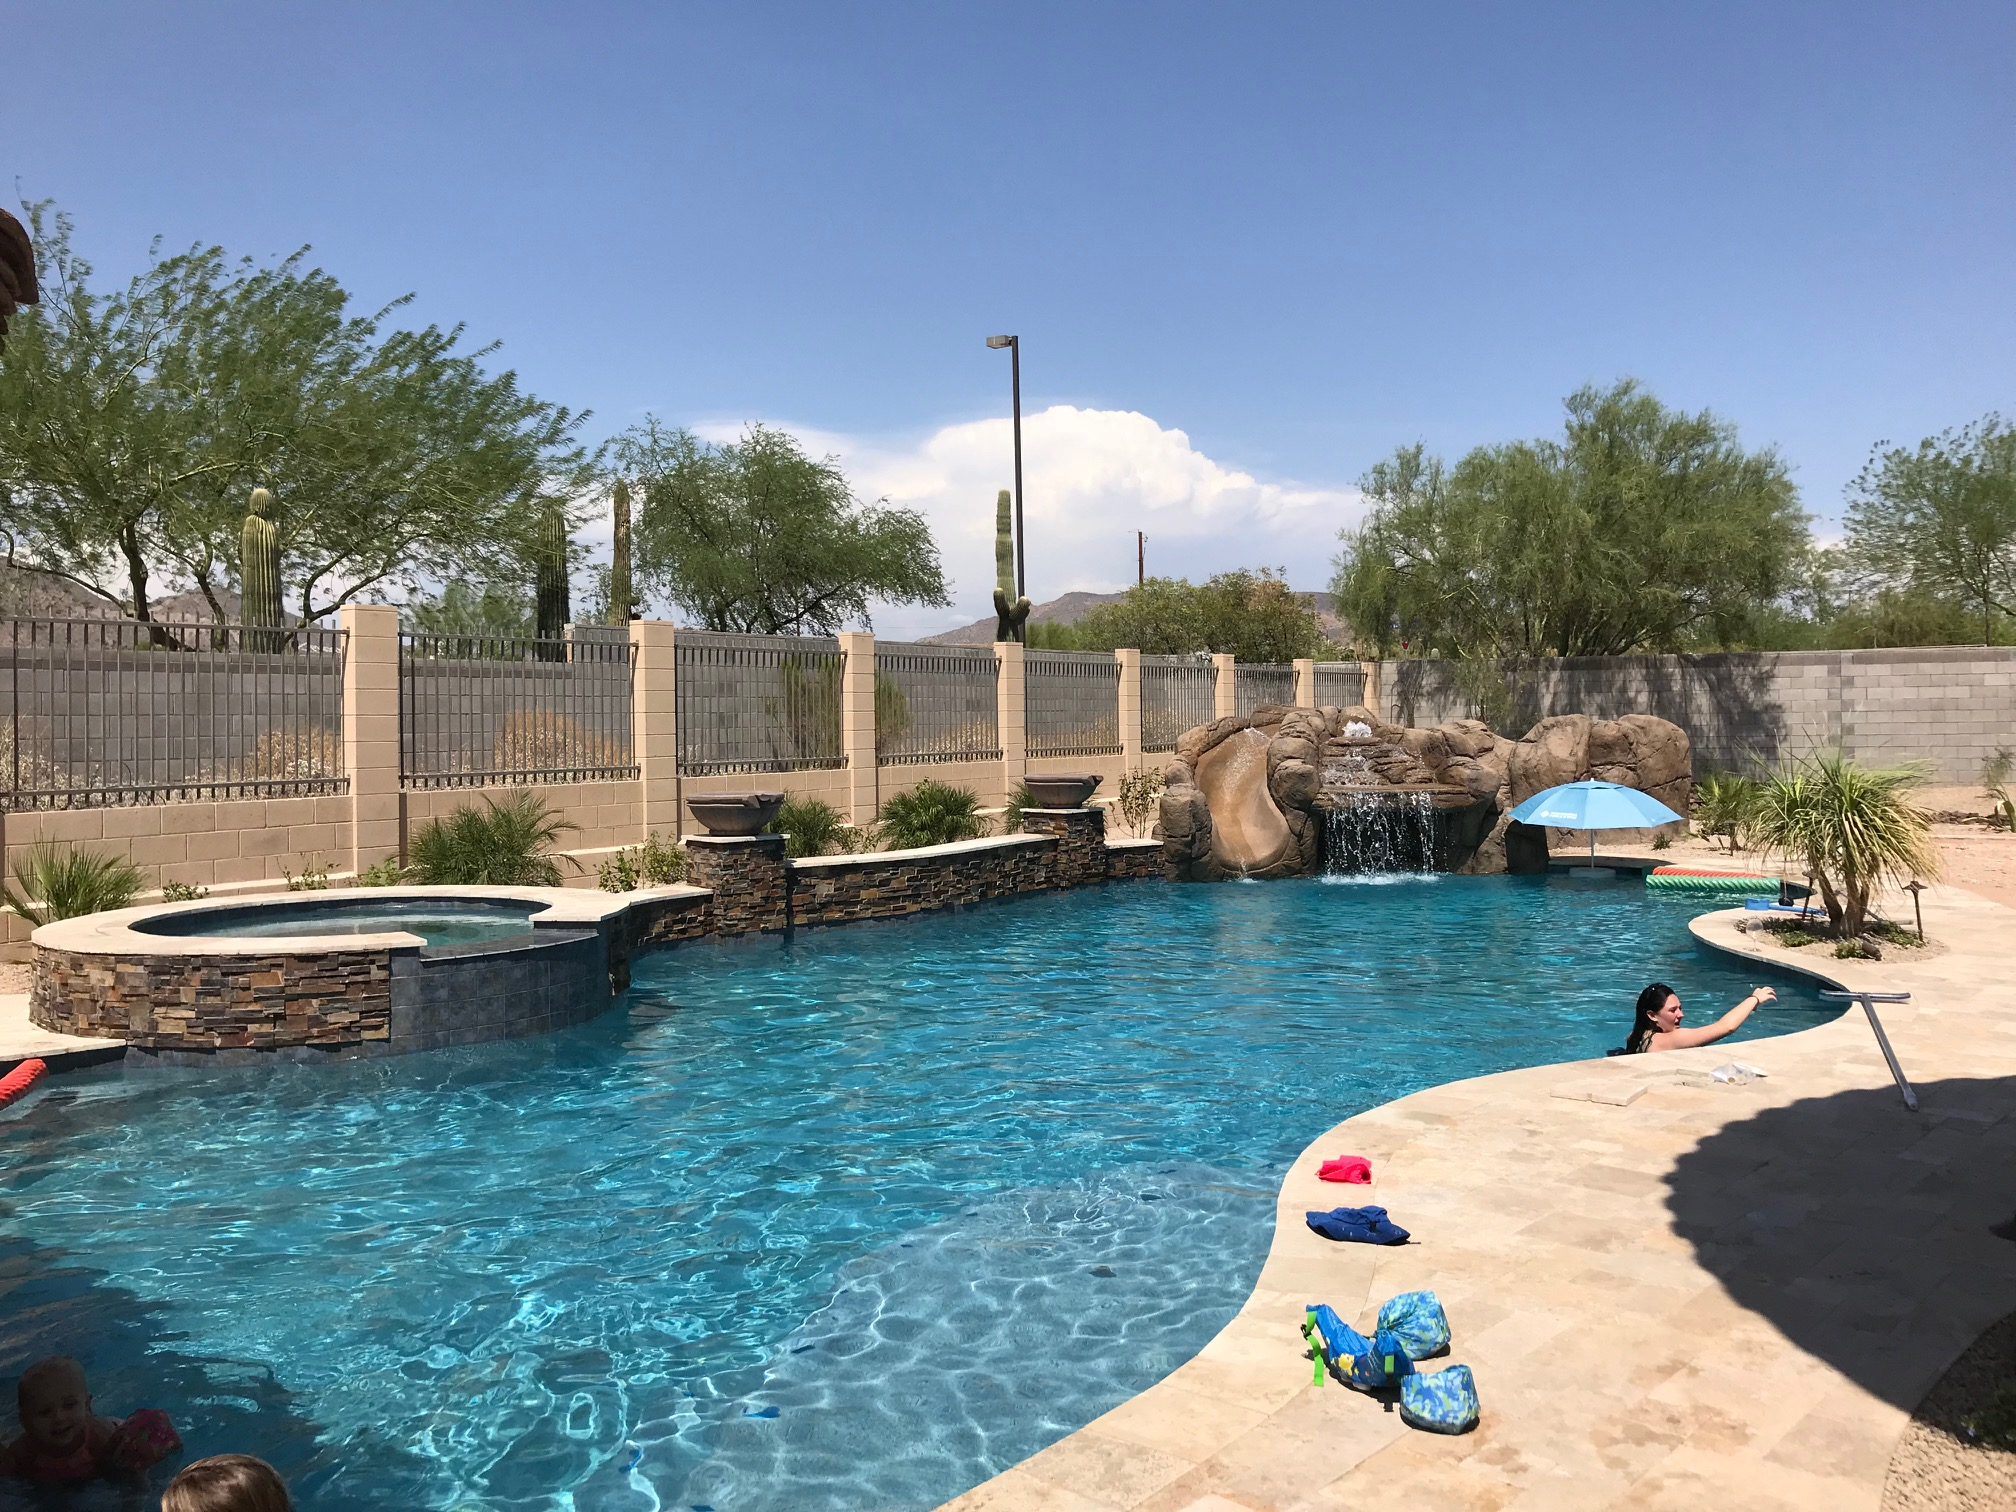 The Summer Pool Building FAQ with Karin Tierney: Prices, Pool Heaters, and Hot Summer Trends